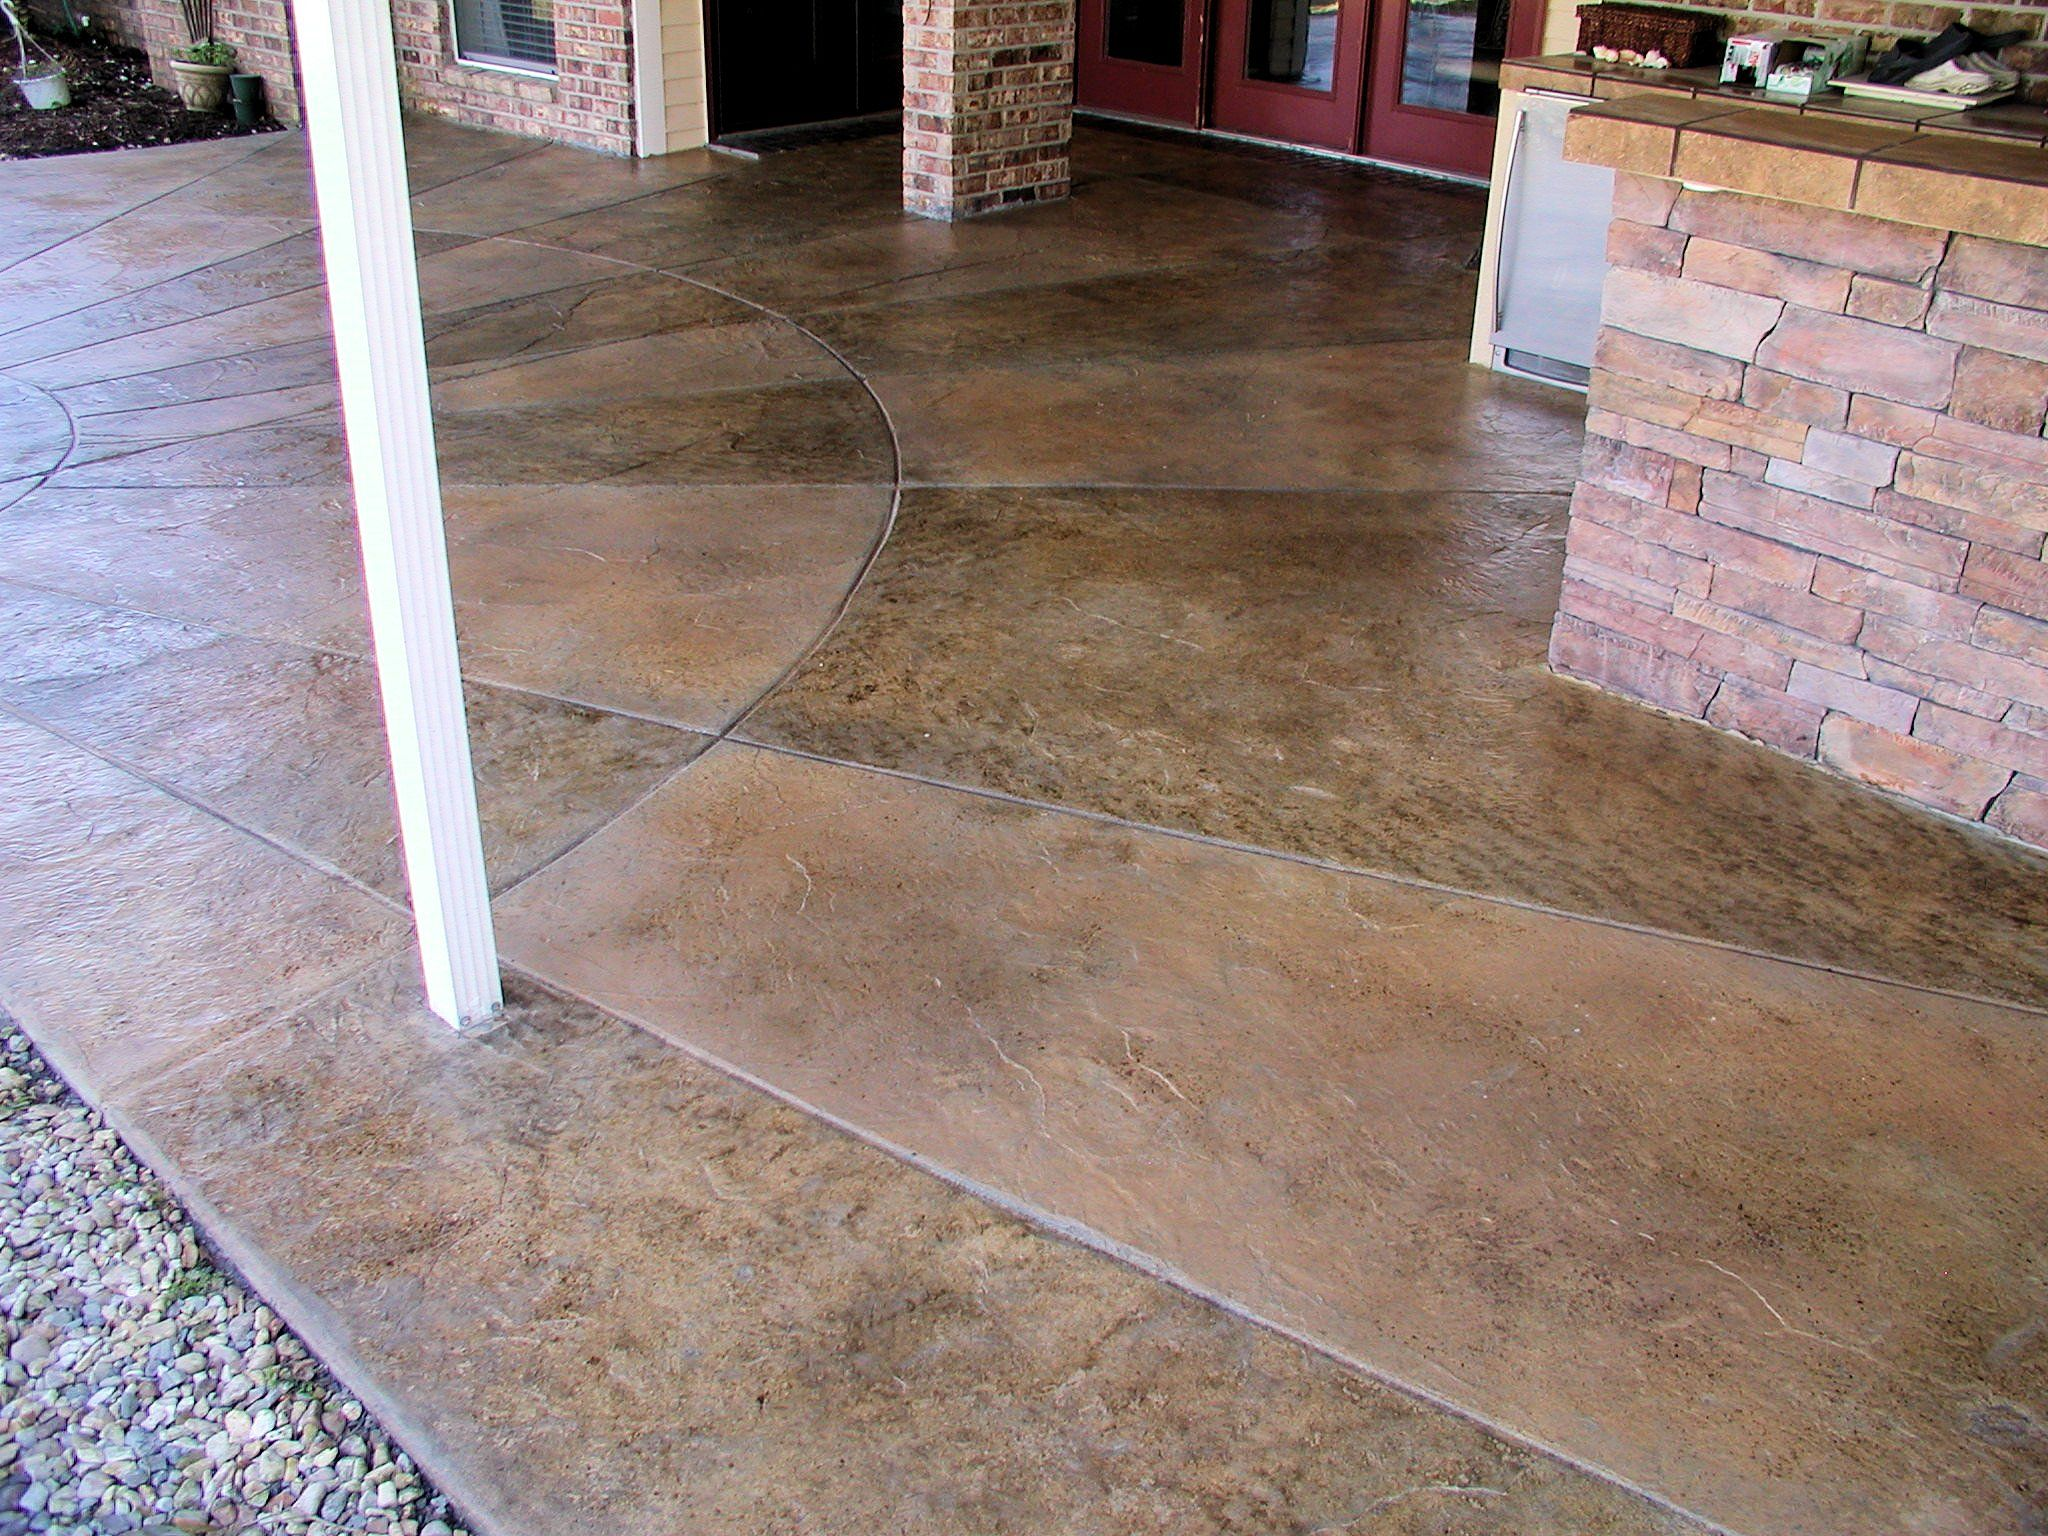 Concrete Miracles; Decorative Concrete Overlay; Italian Slate Design With  Taped Out Design For A